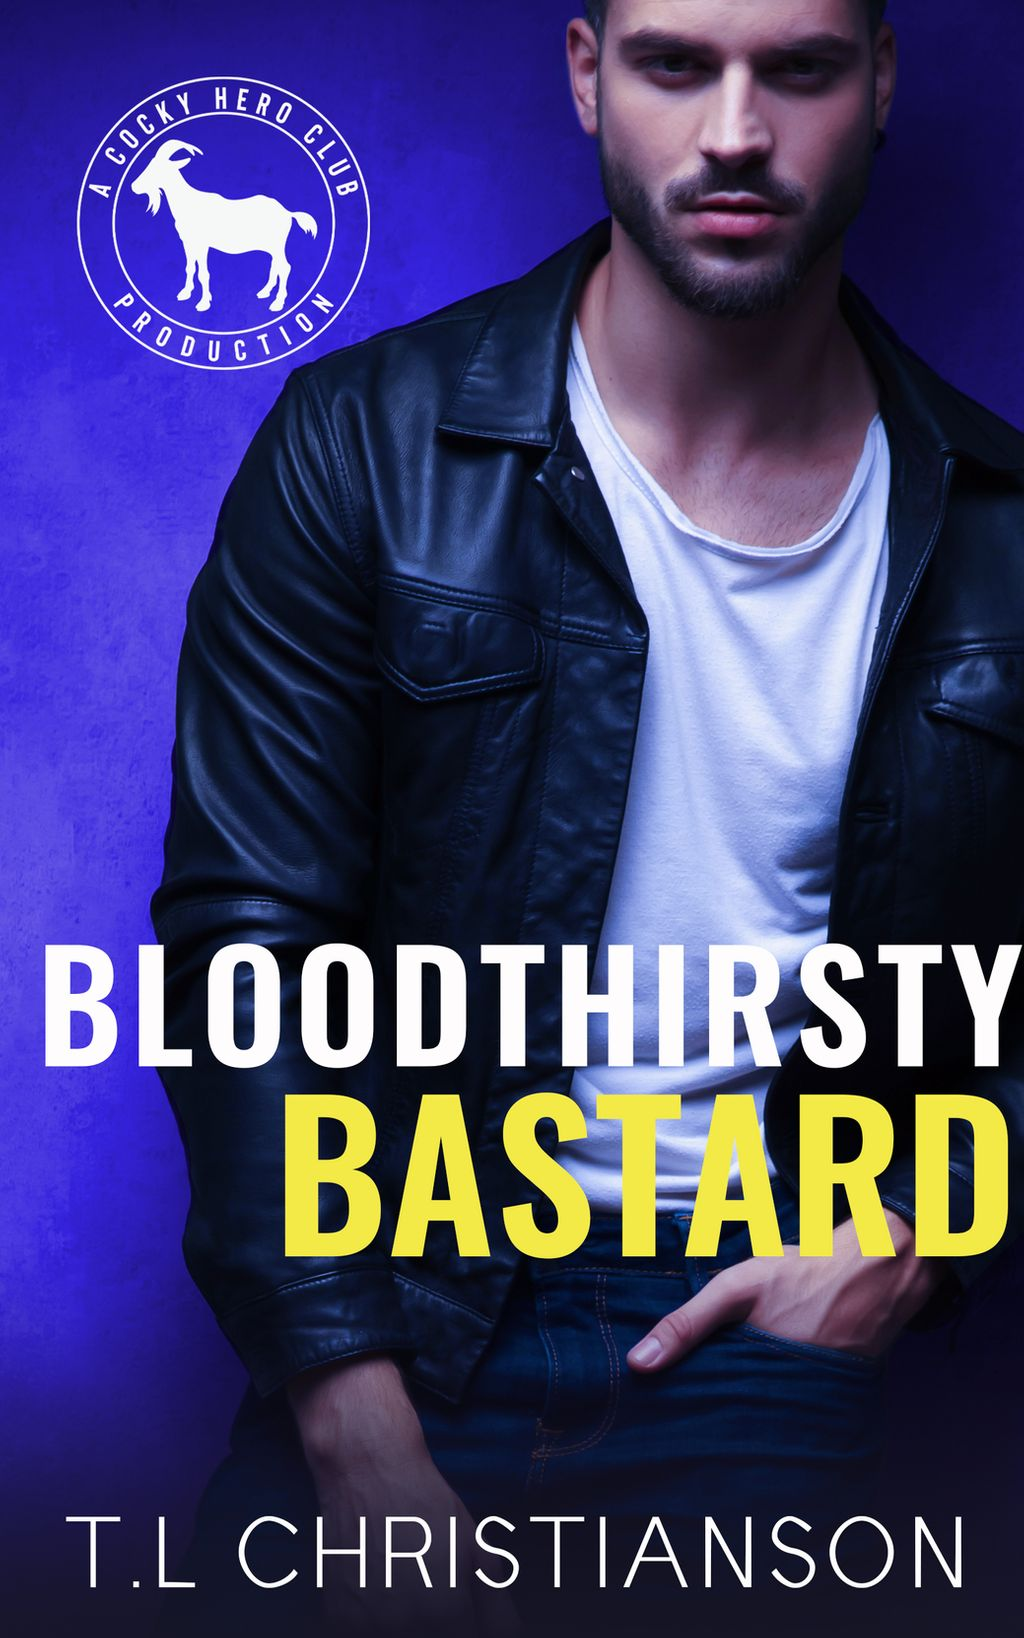 Bloodthirsty Bastard by T.L. Christianson